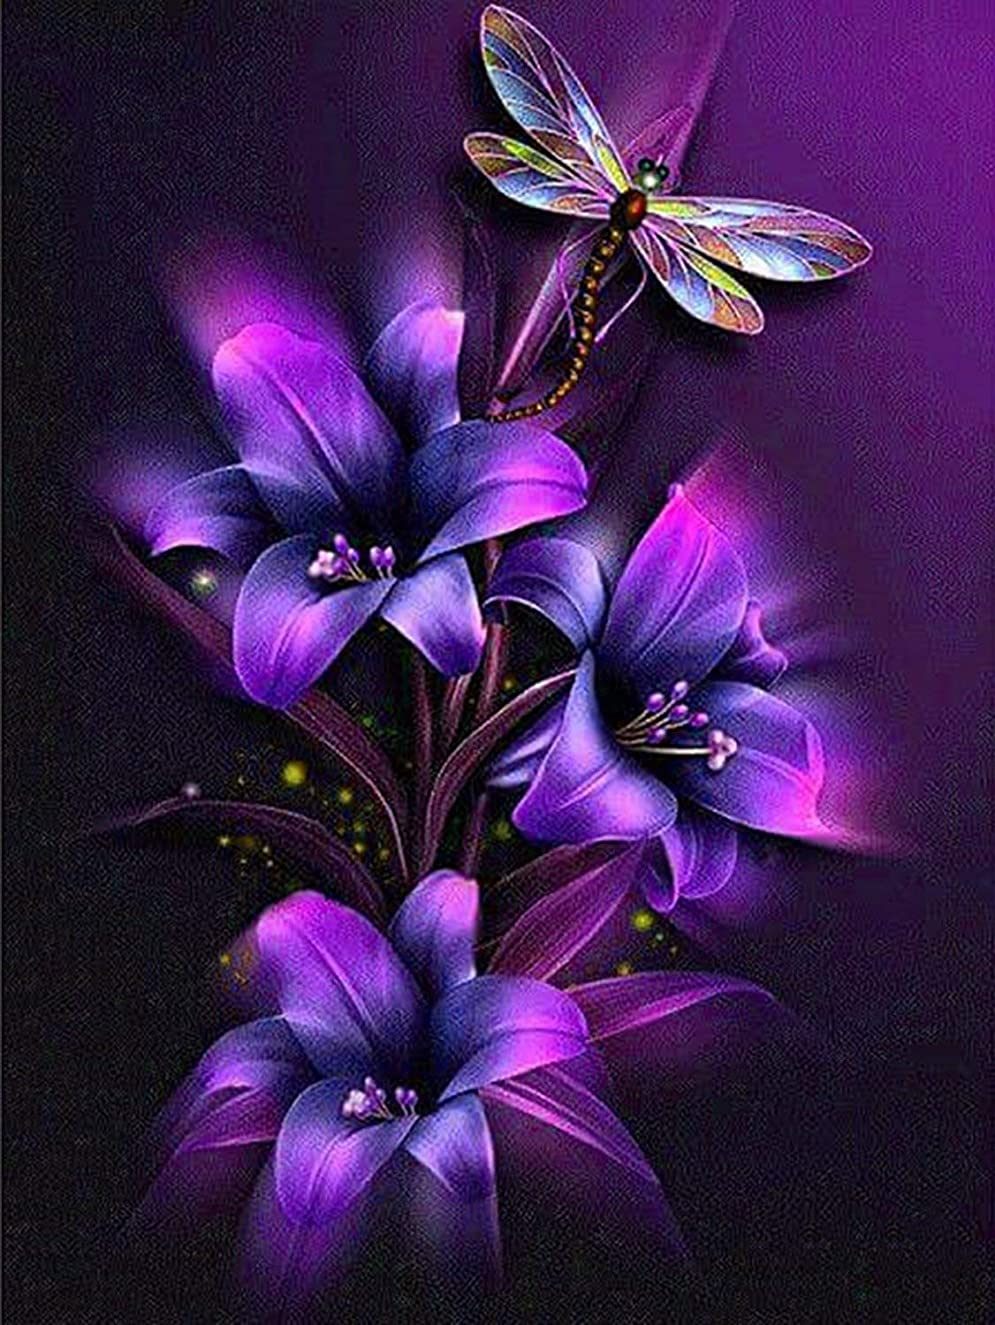 21secret 5D Diamond DIY Painting Full Drill Handmade Purple Dreamy Flowers and Dragonfly Cross Stitch Home Decor Embroidery Kit